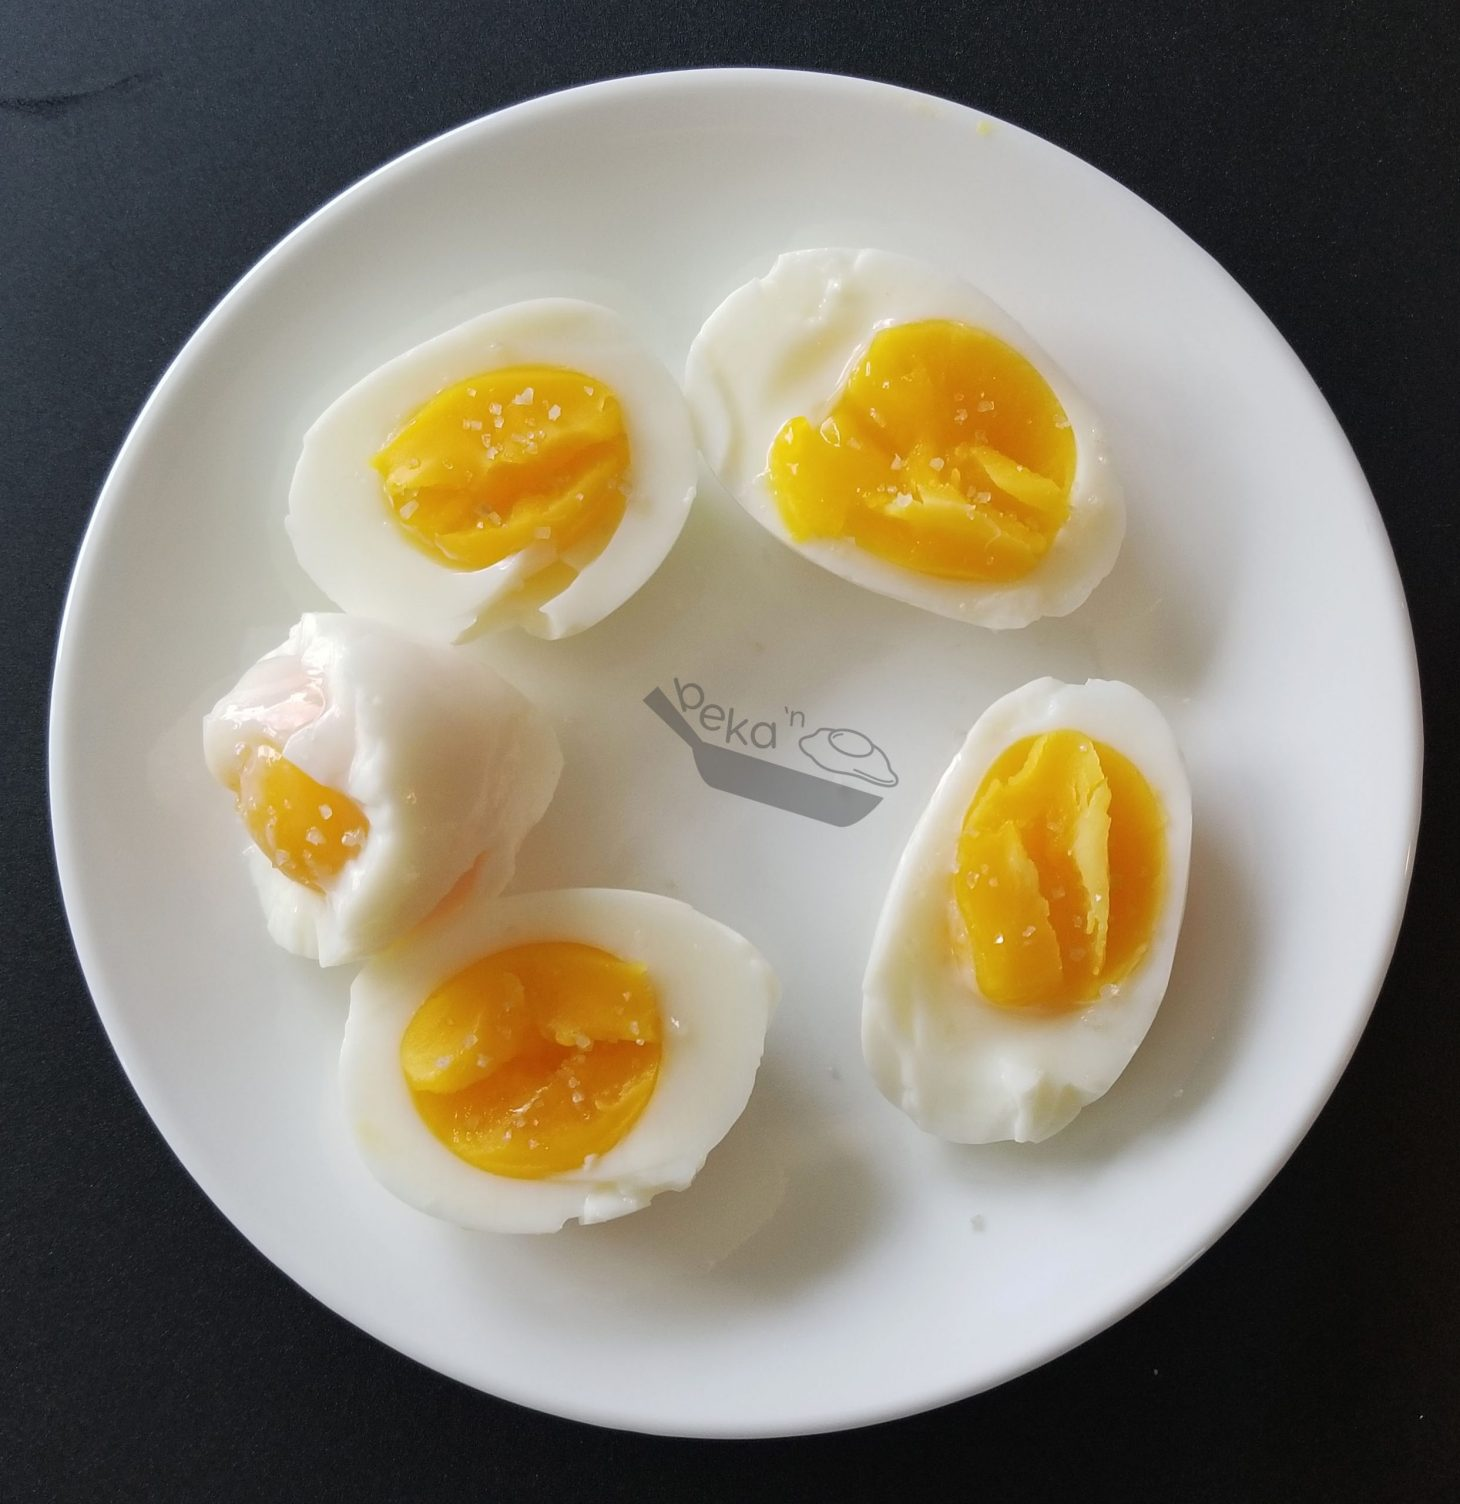 An overhead image of five sous-vide egg halves on a white plate. Black background.